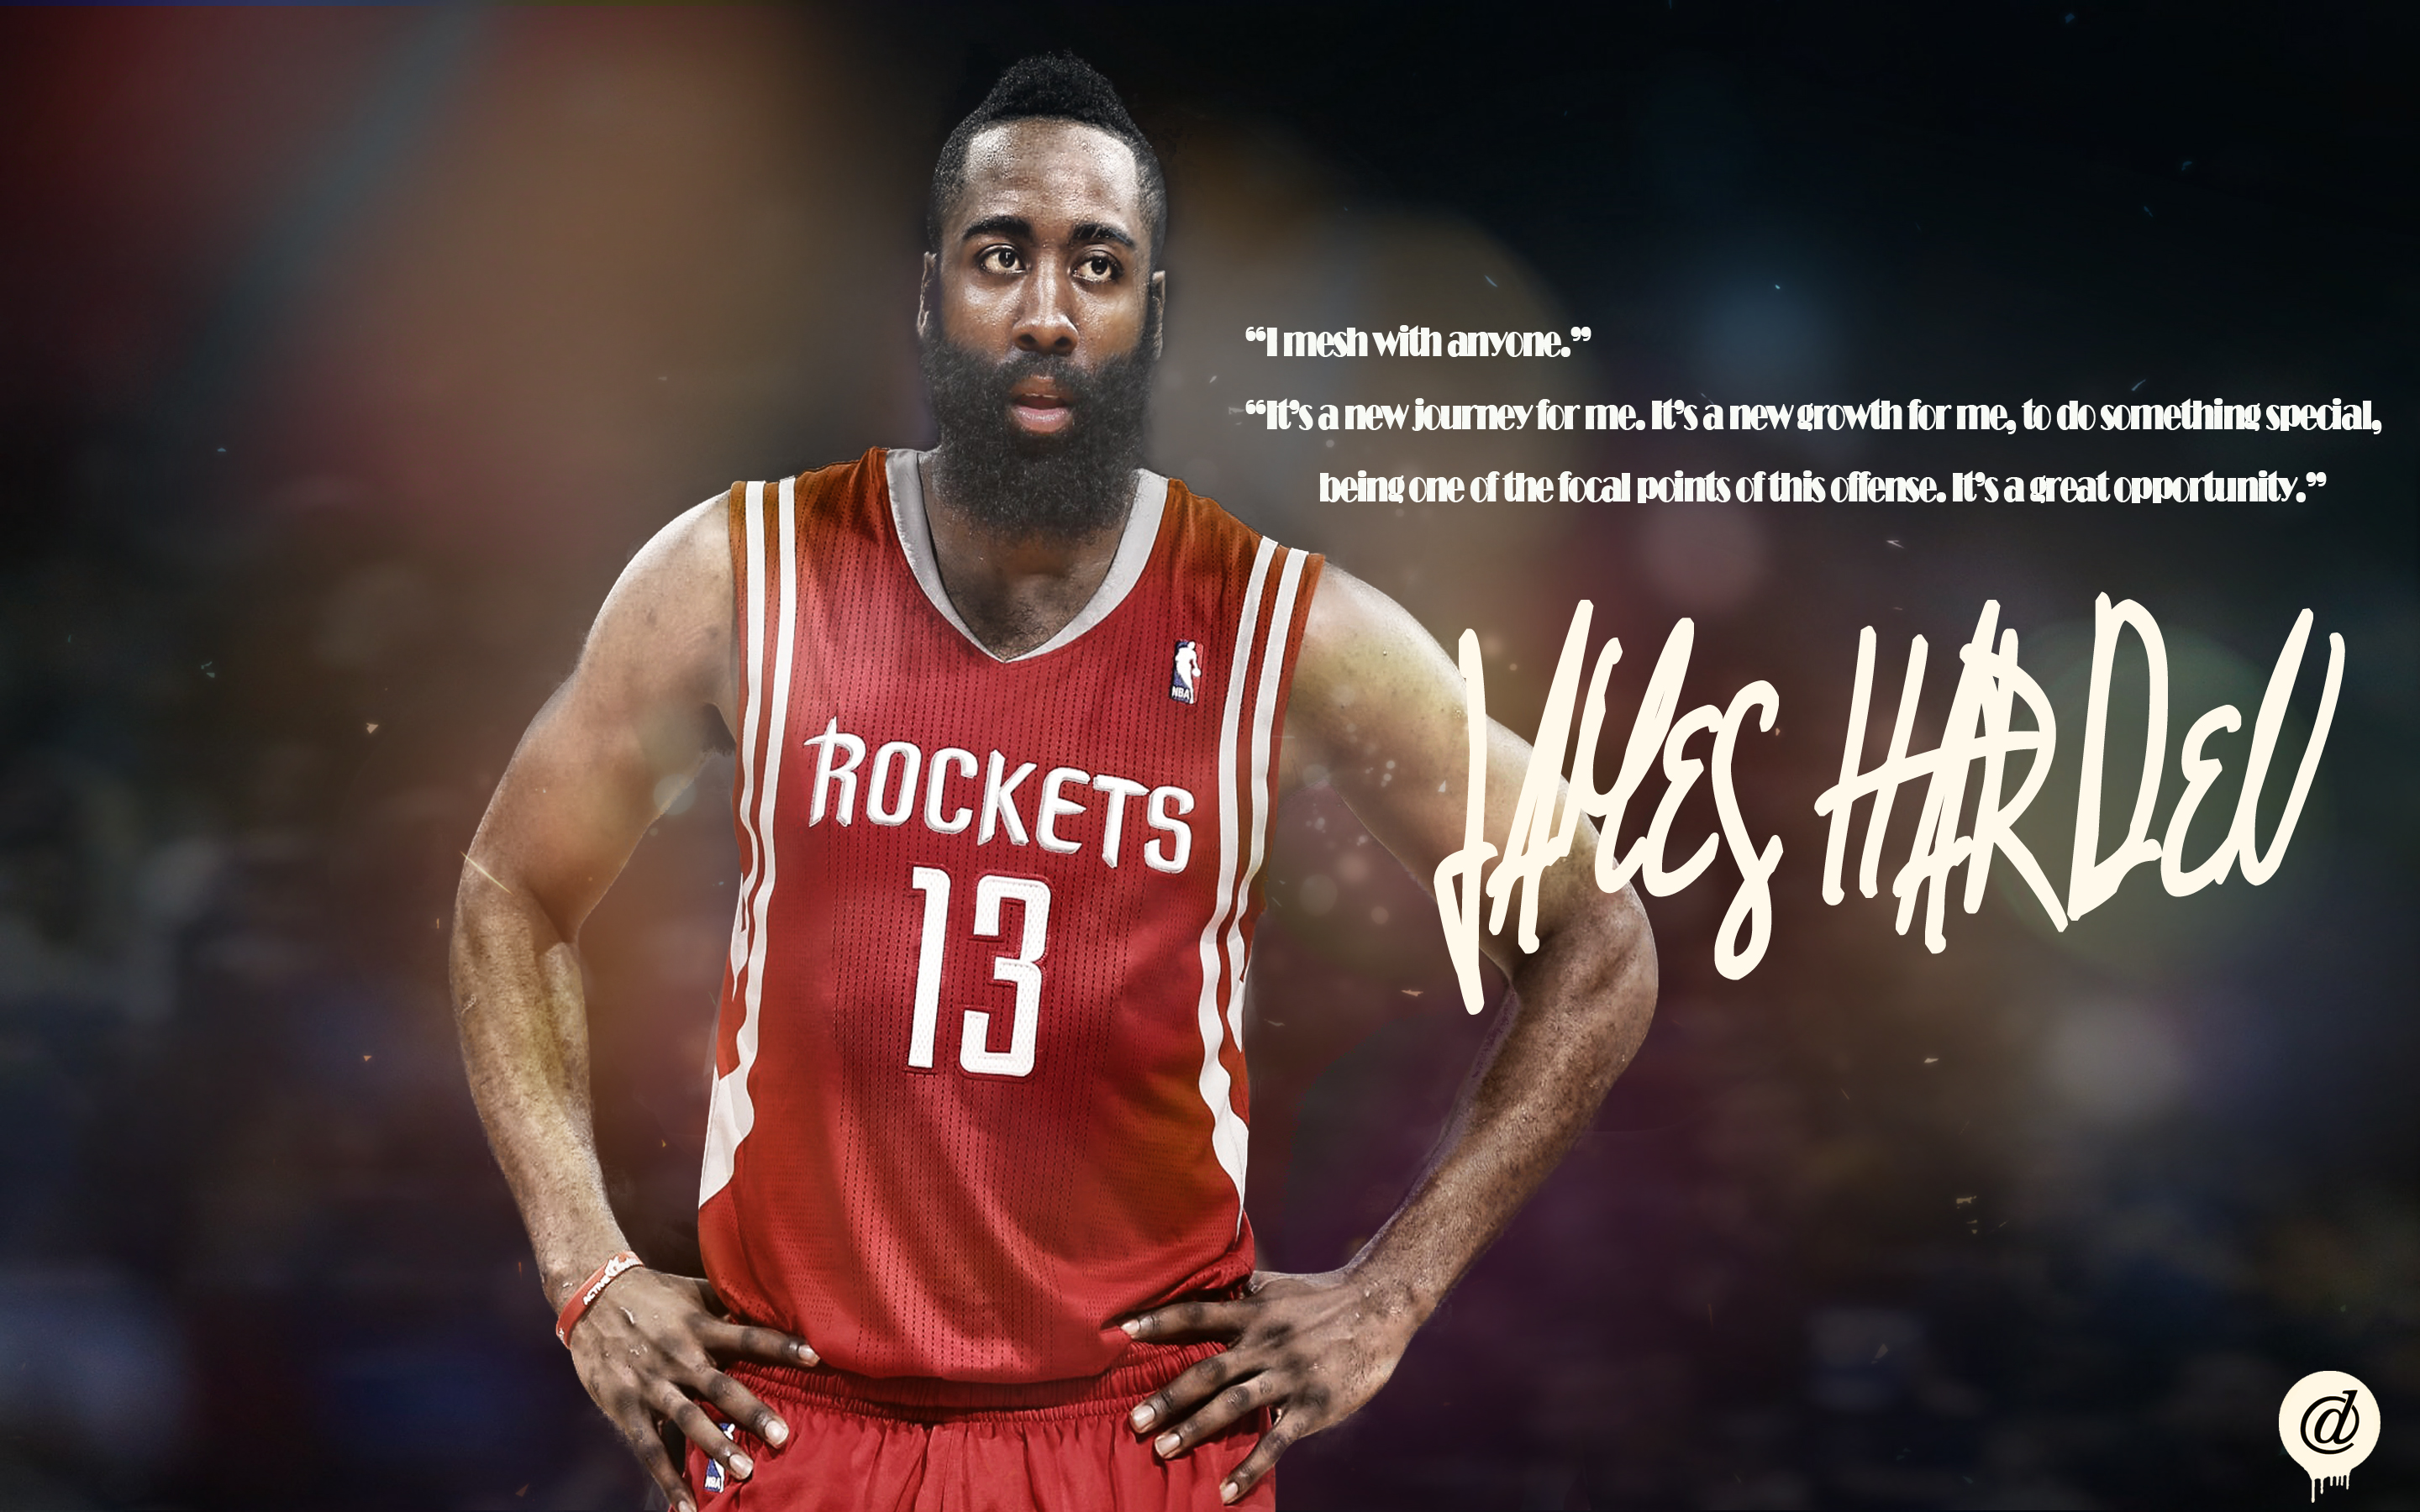 Derrick Rose Wallpaper Quotes James Harden Wallpapers Hd Pixelstalk Net